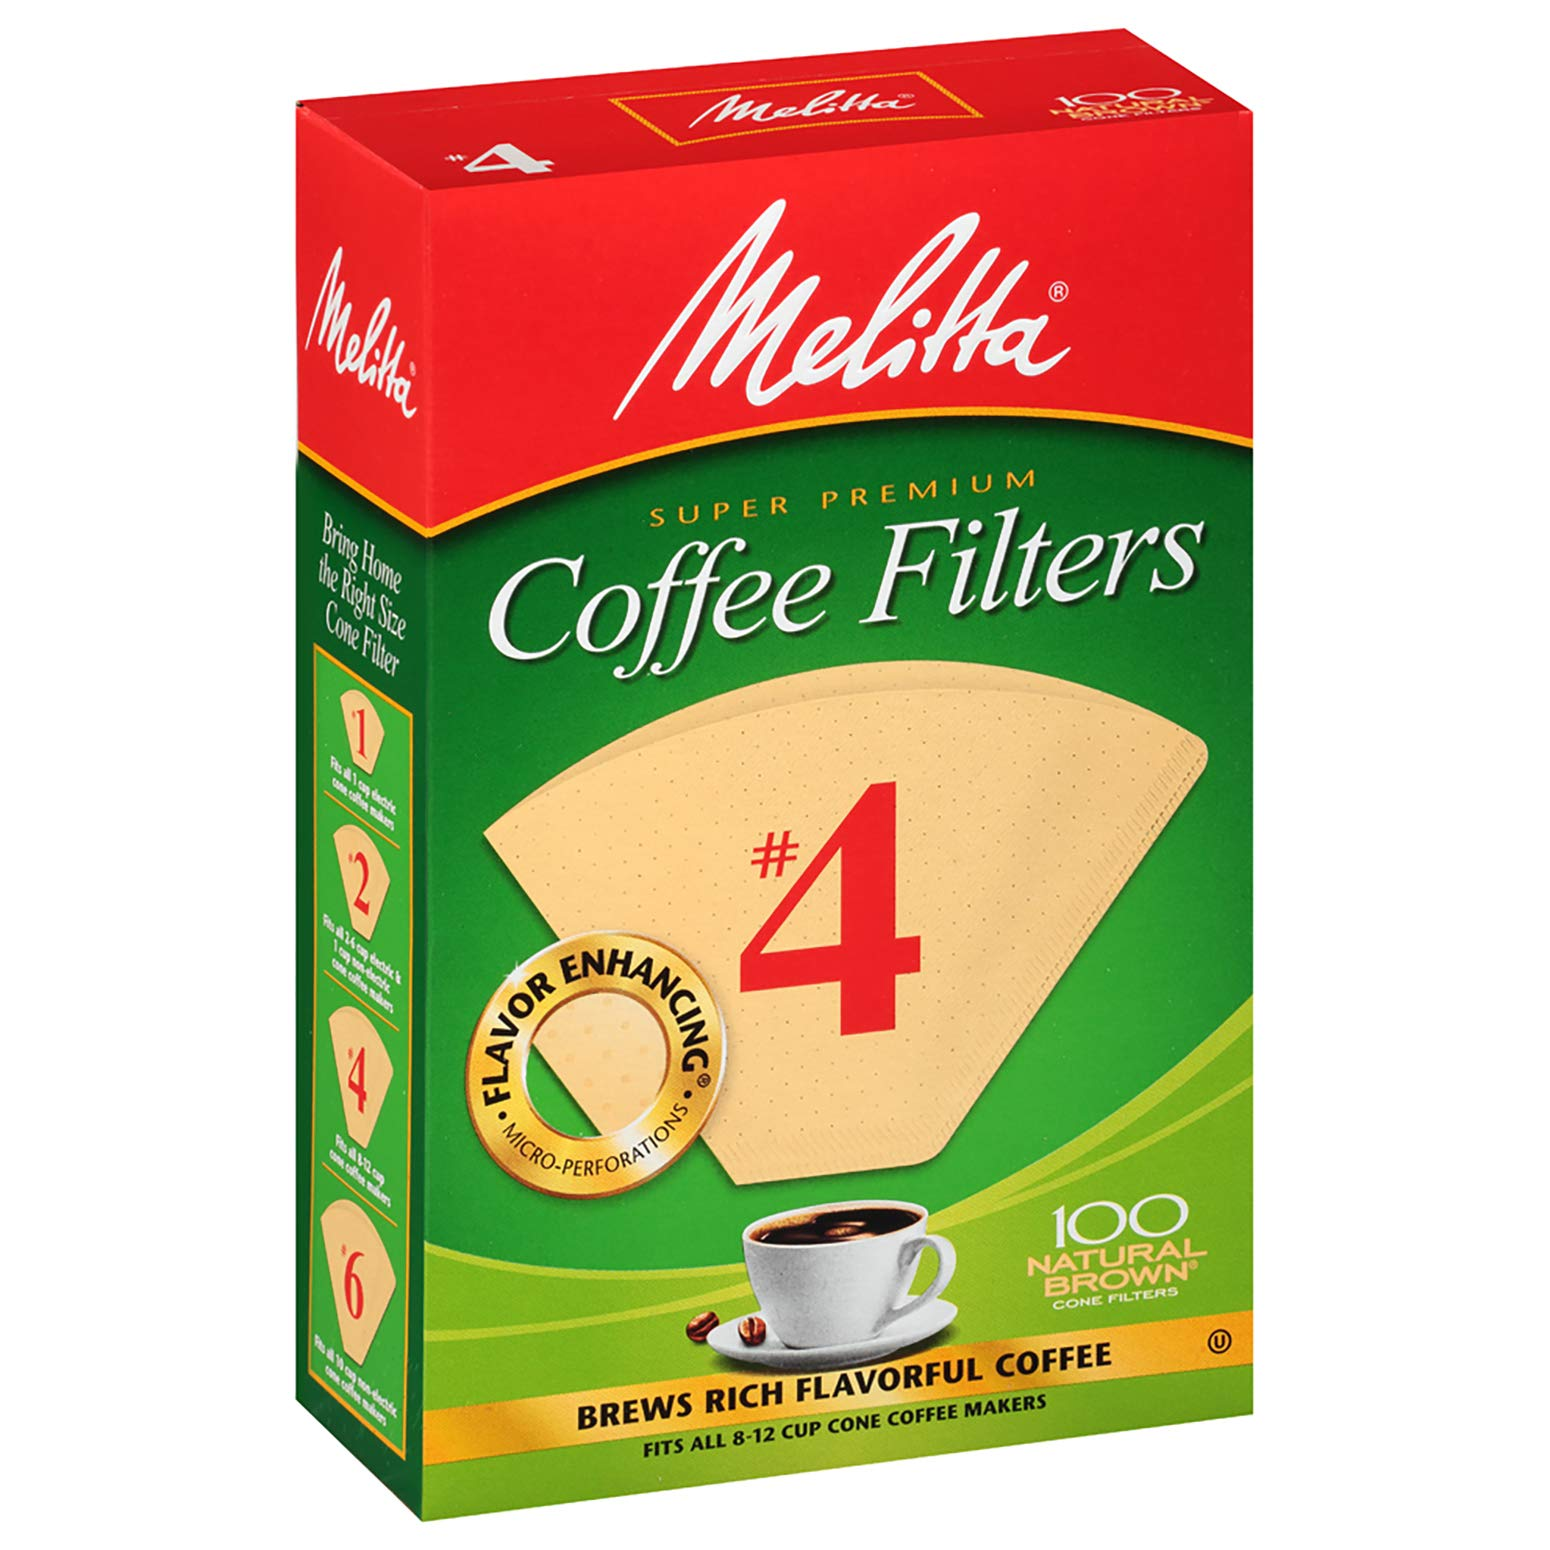 Melitta Number 4 Coffee Filters, Natural Brown, 100 Count (Pack of 6) by Melitta